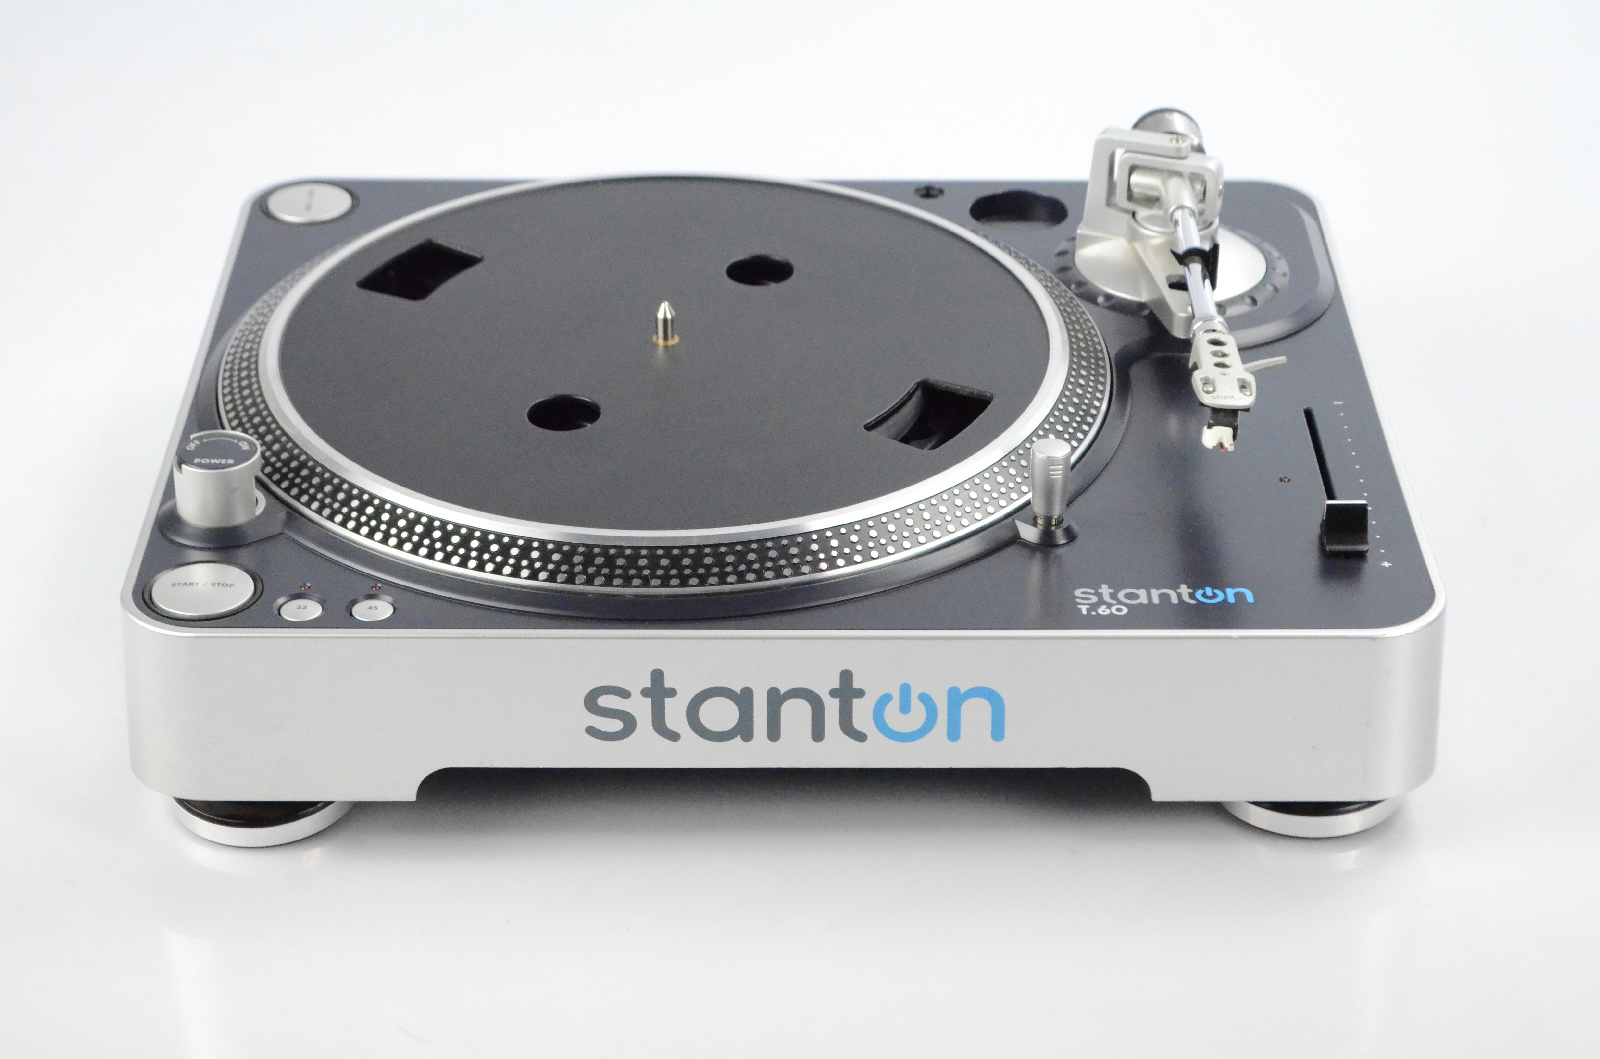 Stanton T.60 T60 T60B Professional Turntable Record Vinyl LP Player #33197